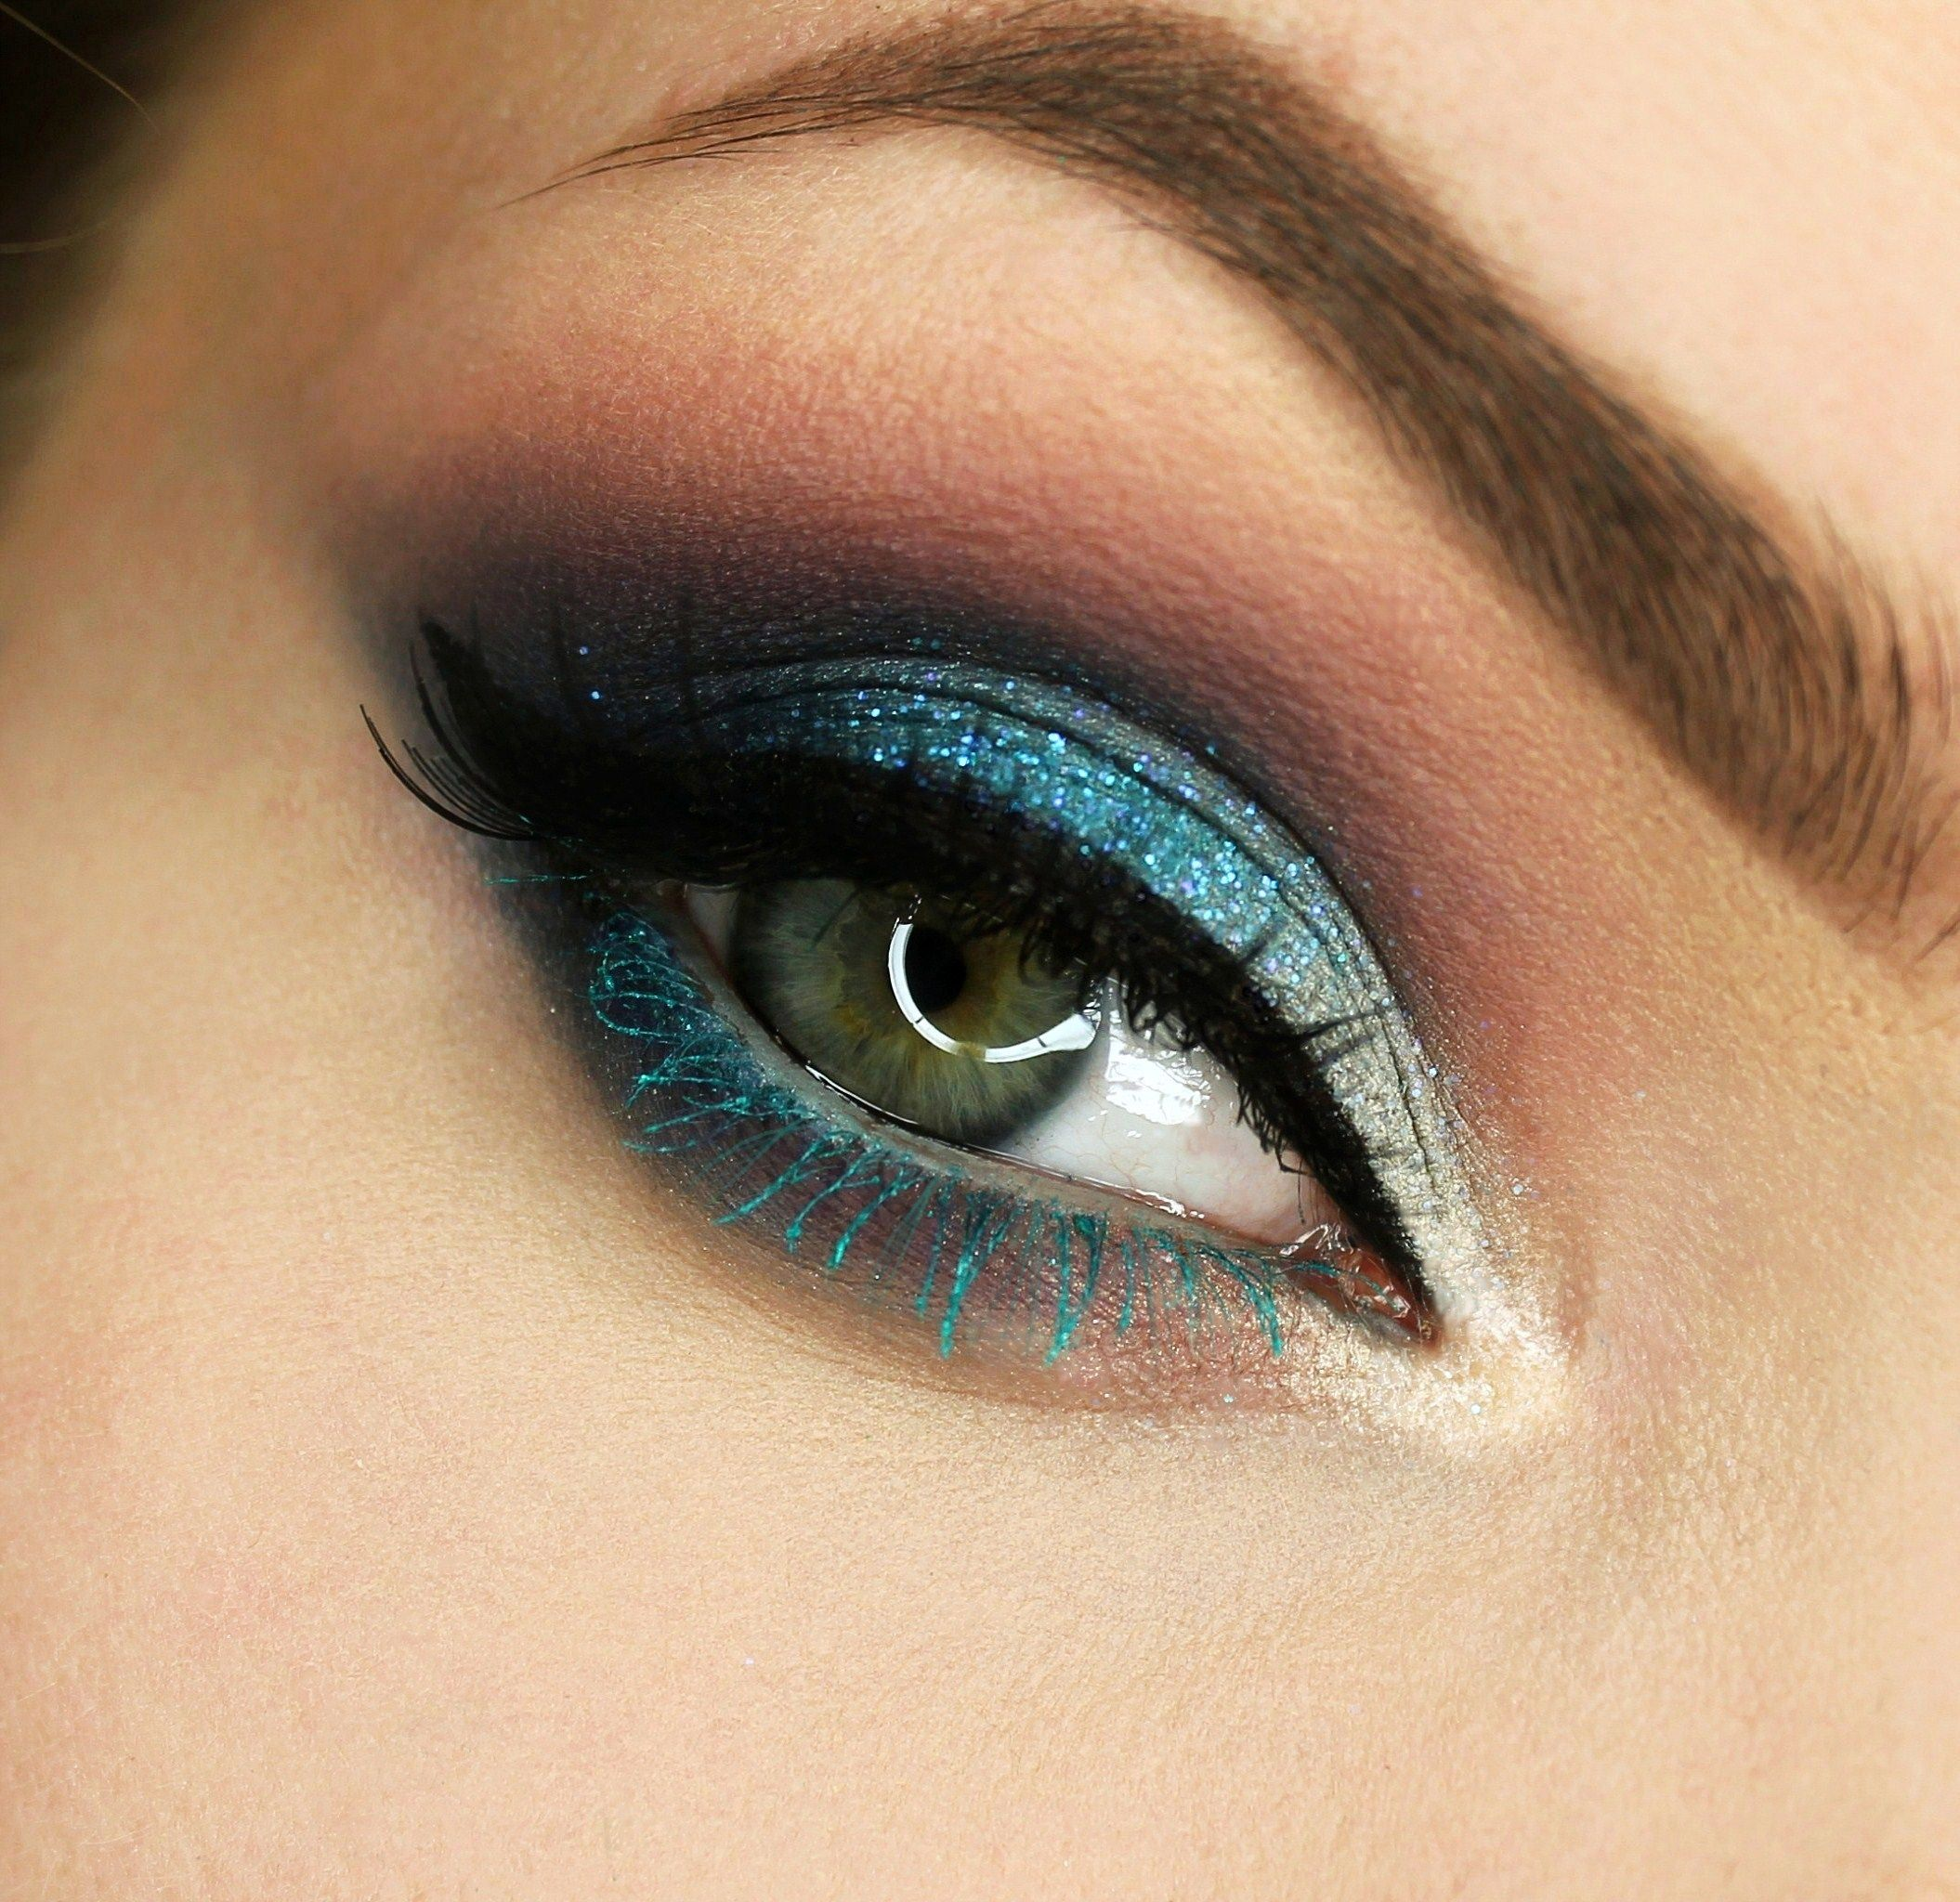 Makeup Geek Eyeshadows in Cupcake, Poolside, Simply